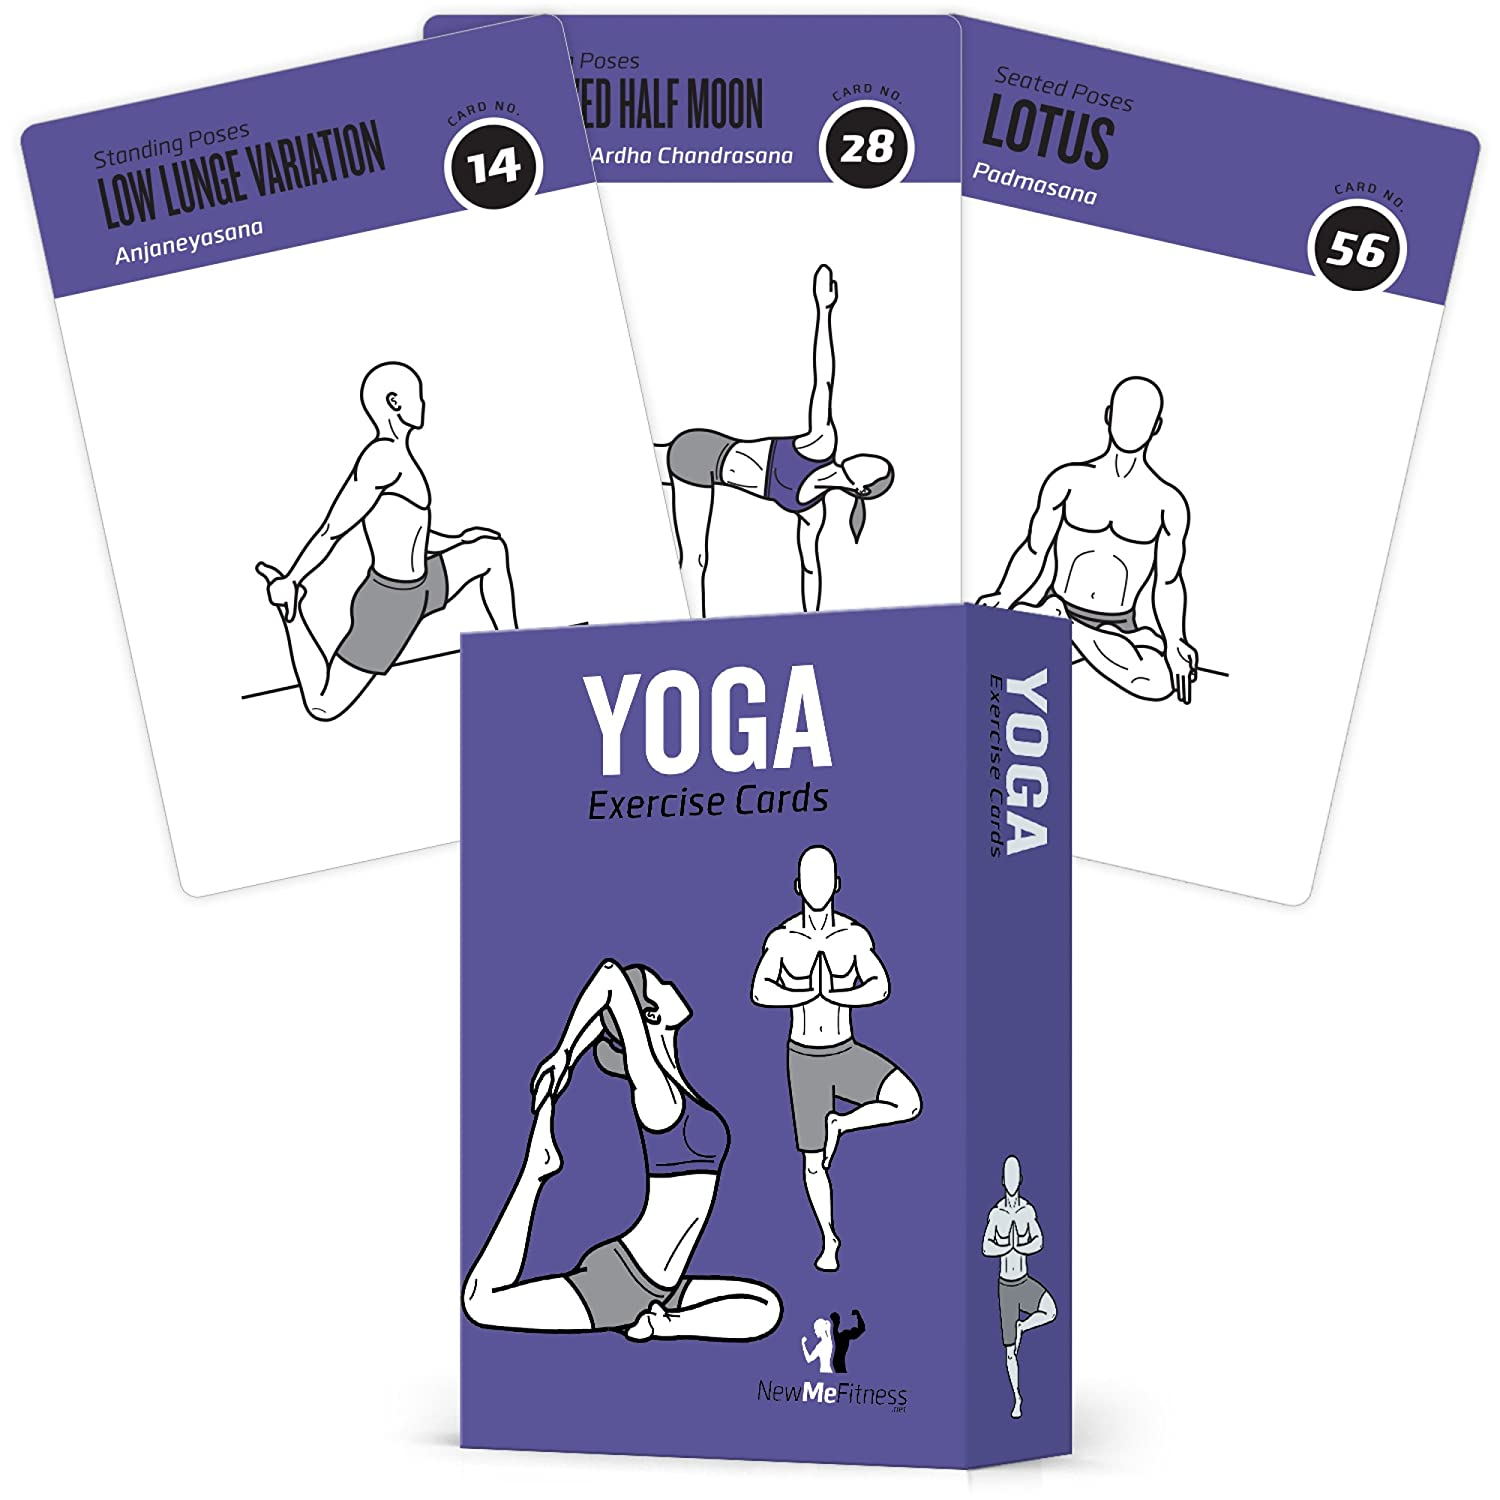 NewMe Fitness Yoga Pose Sequence Exercise Cards - 70 Yoga Poses, 9 Sequences - Sanskrit & English Asana Names - Yoga Sequencing & Flow Practice Guide For Beginner & Intermediates - Durable Plastic